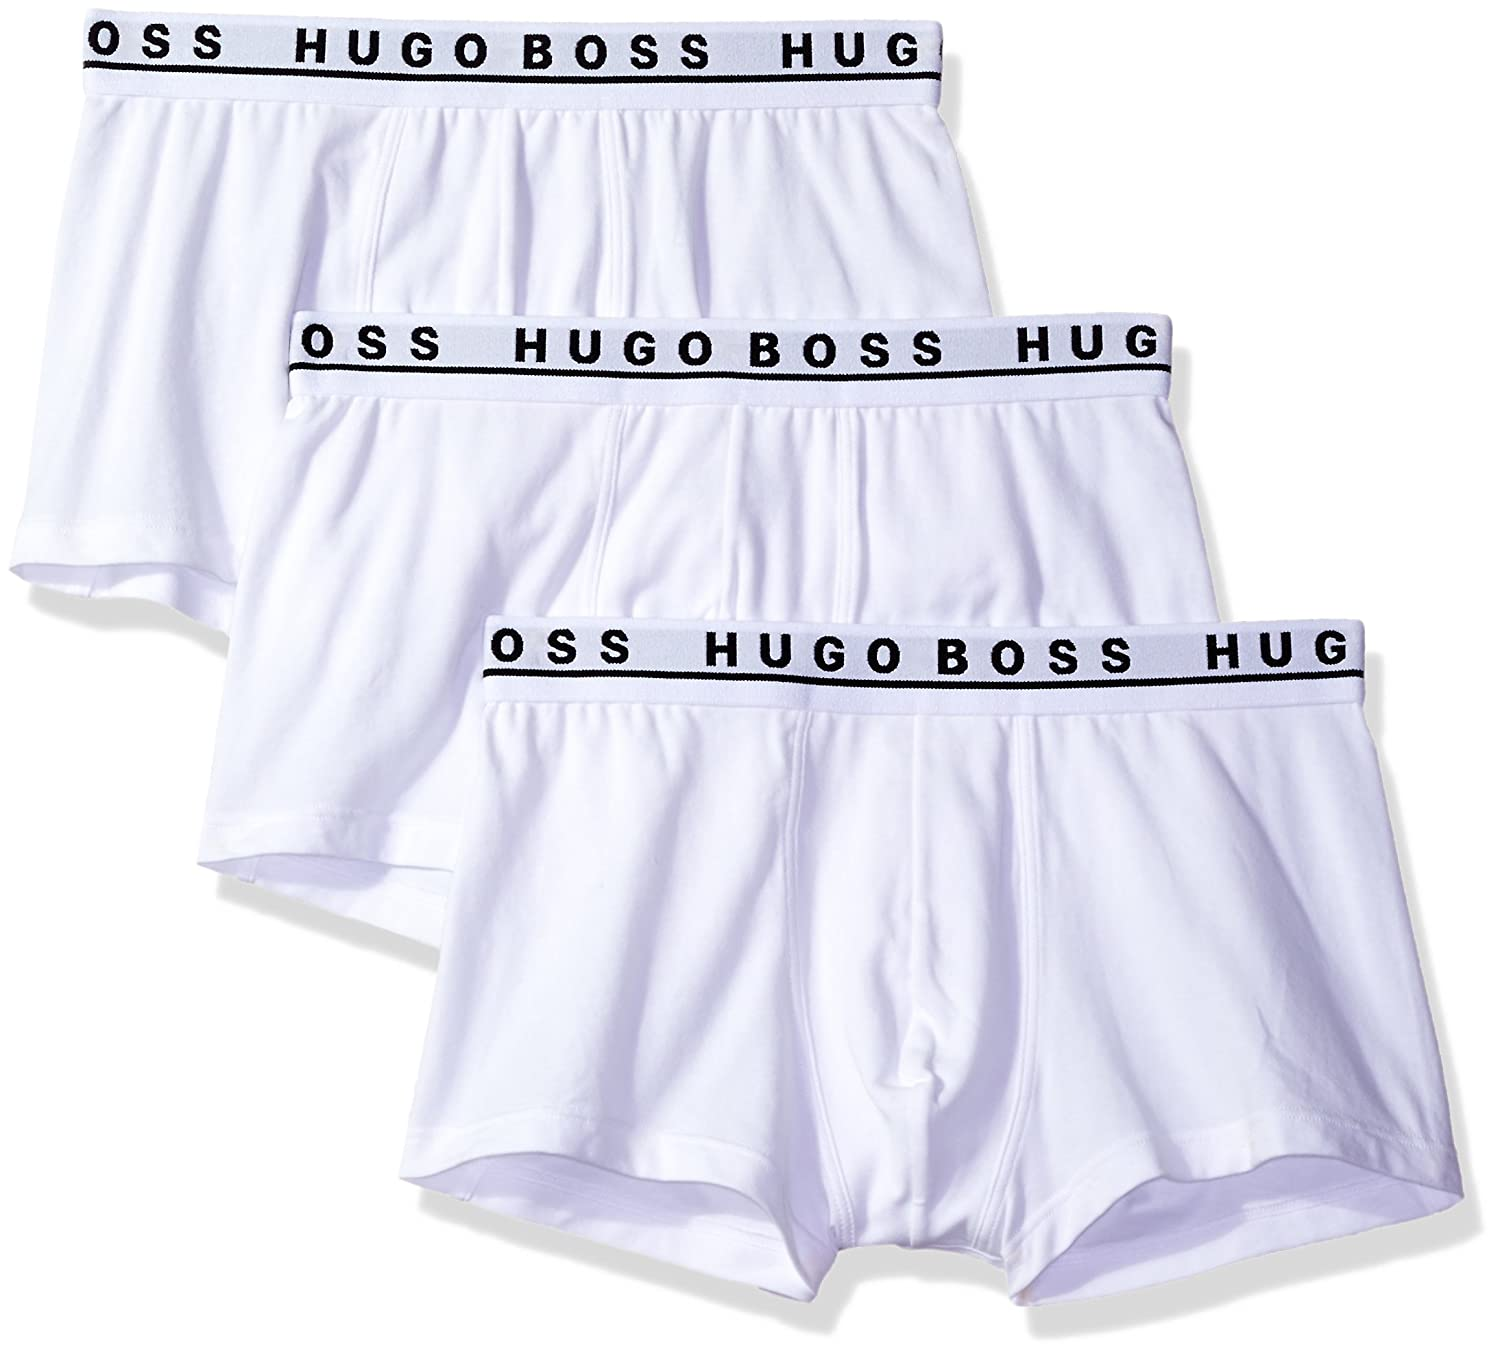 BOSS Hugo Boss Mens Trunk 3p Co/el 10146061 01 HUGO BOSS Men' s Underwear 50325403